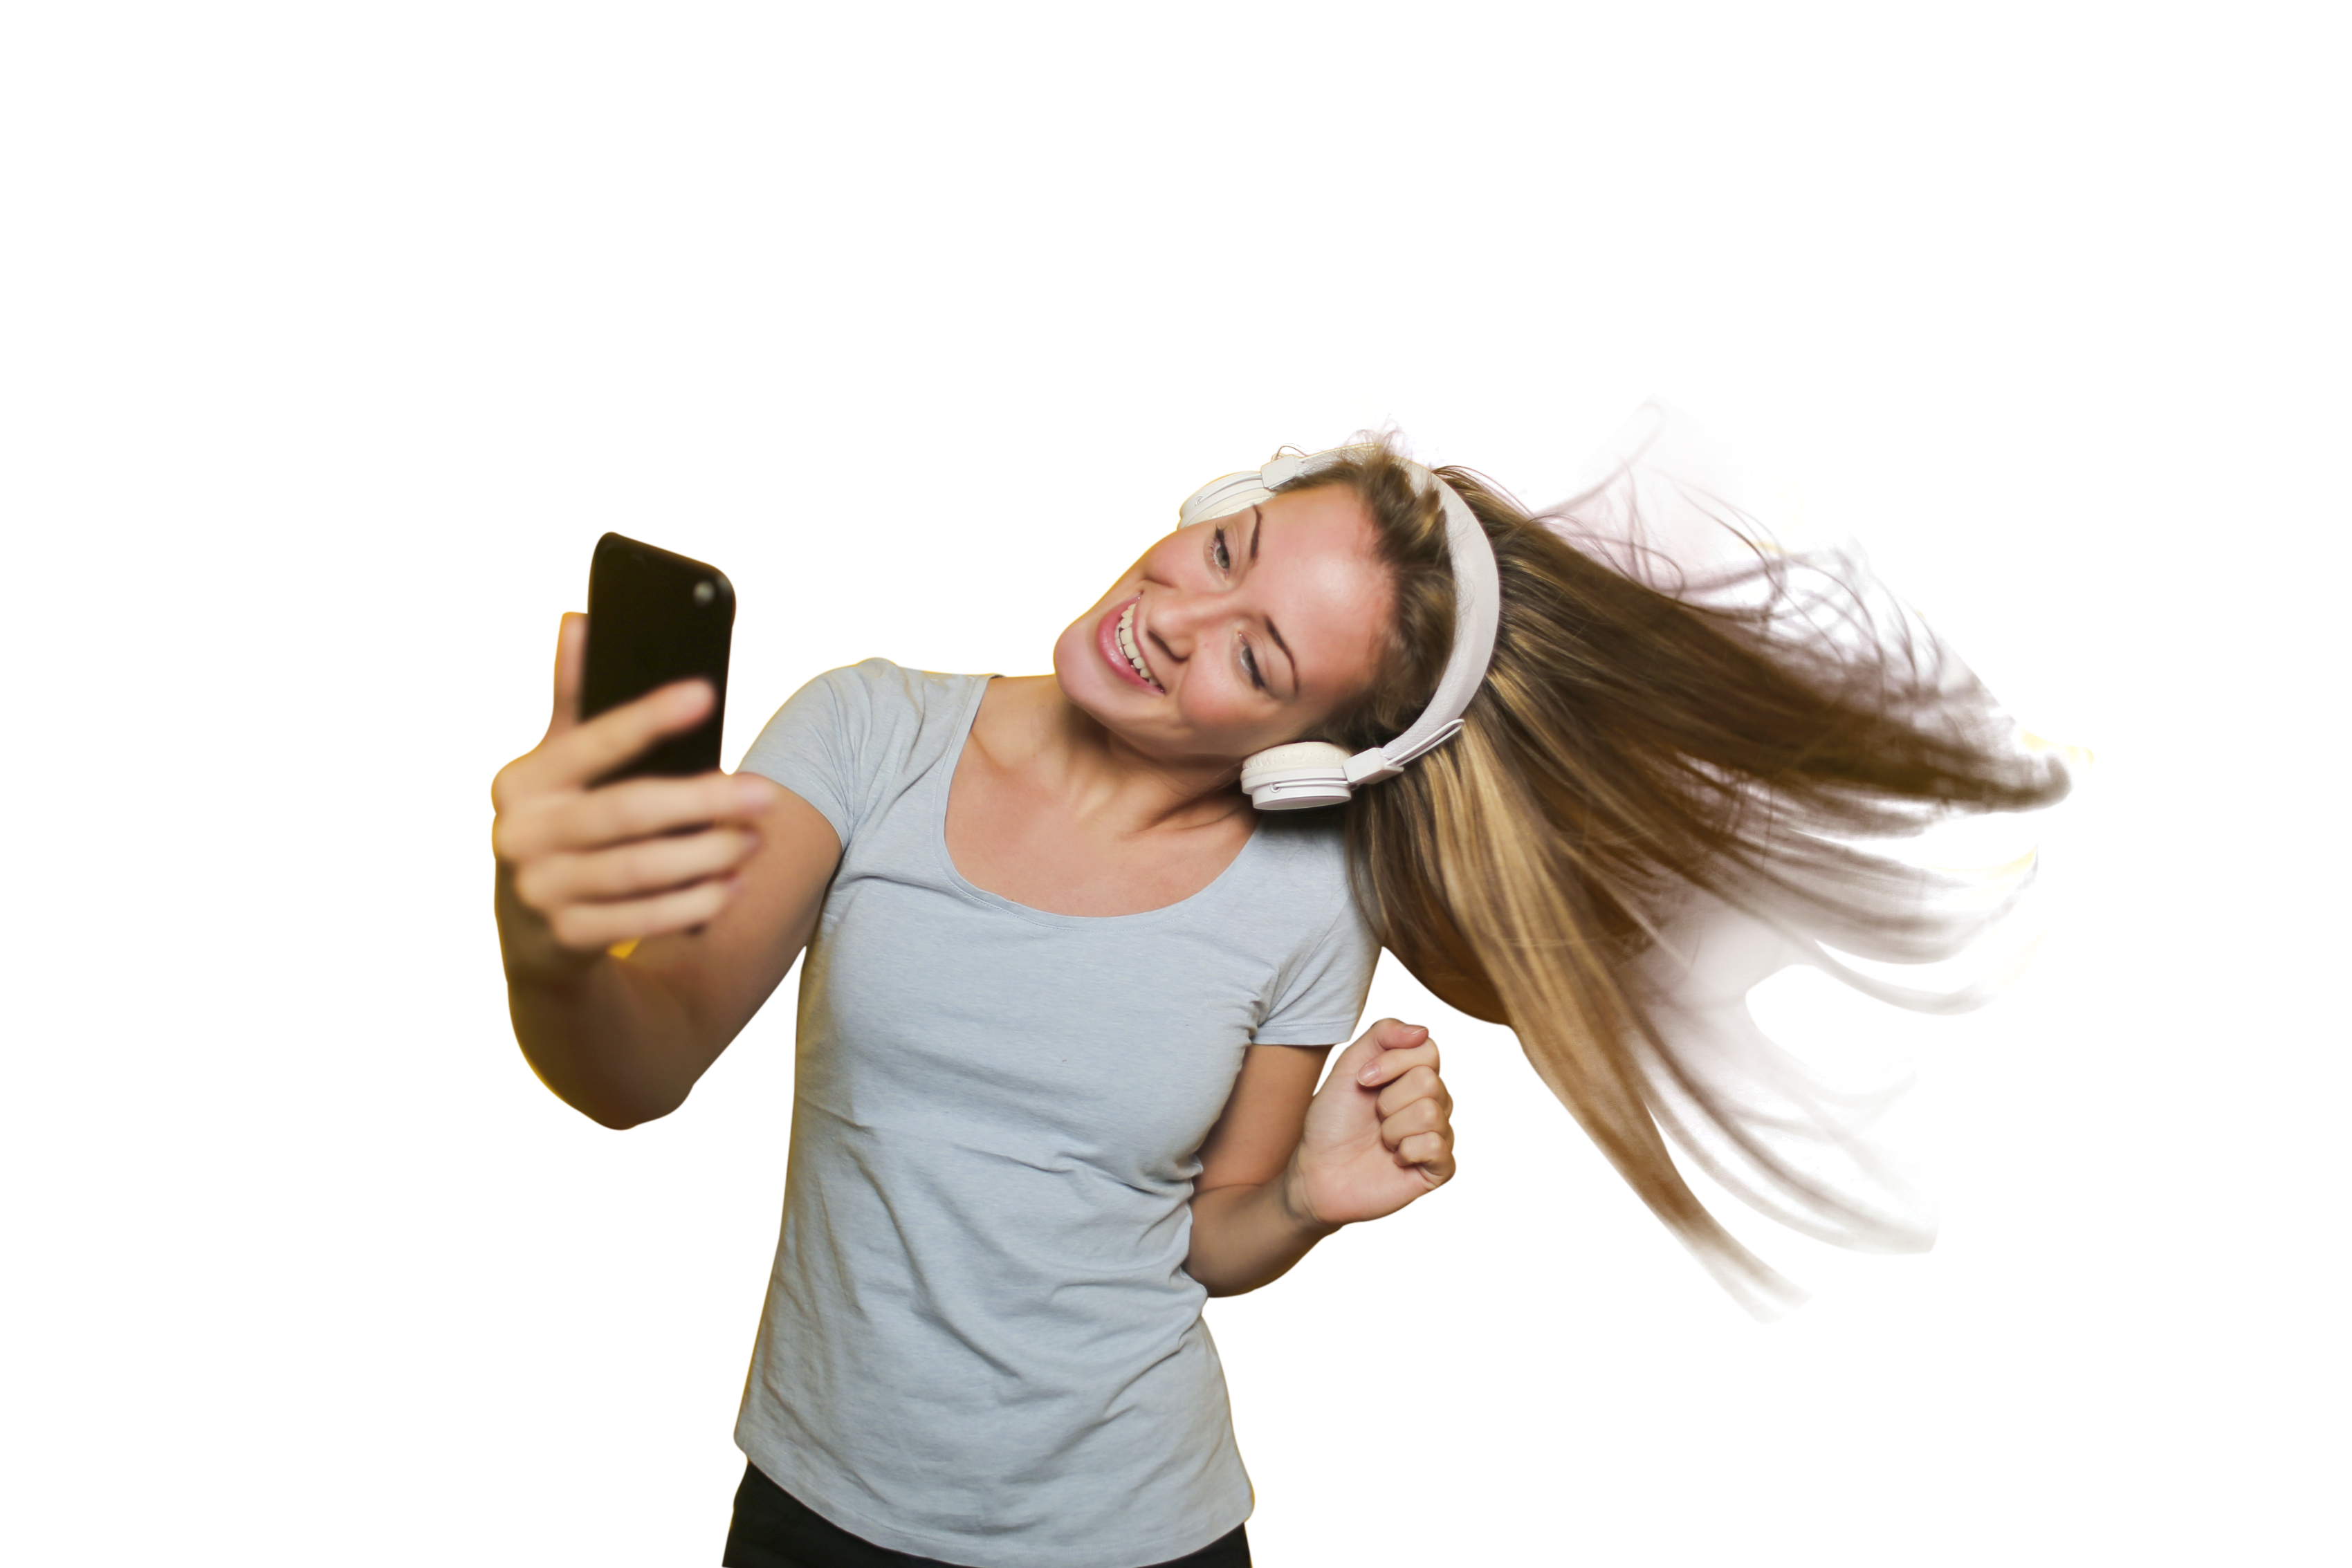 Girl Taking Selfie with listening music PNG Image